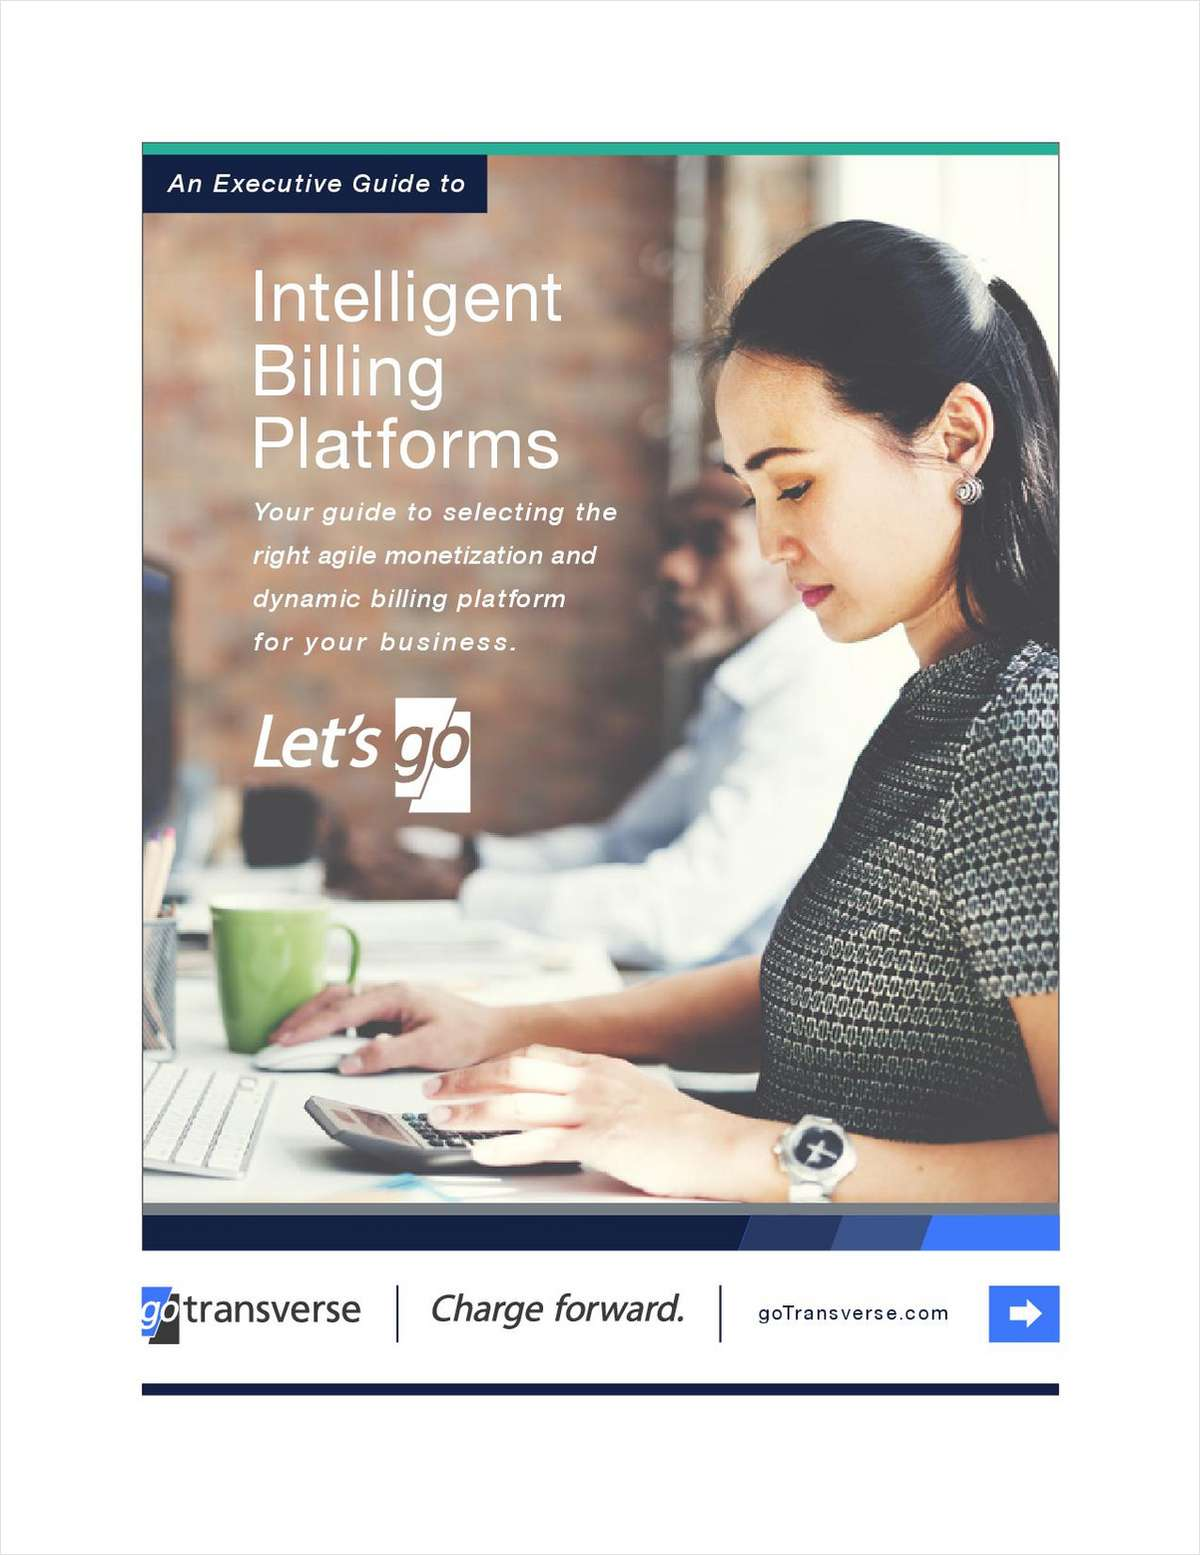 An Executive Buyer's Guide to Intelligent Billing